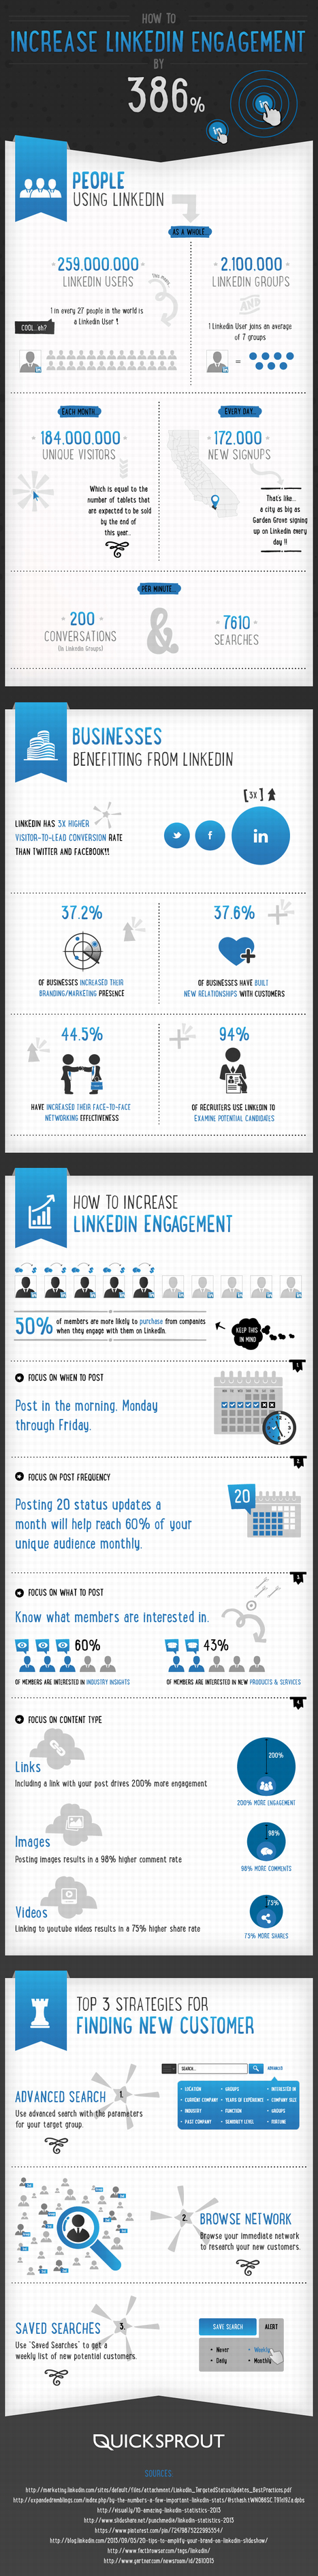 Must-Know Strategies That Boost Your LinkedIn Engagement | Social Selling | Scoop.it